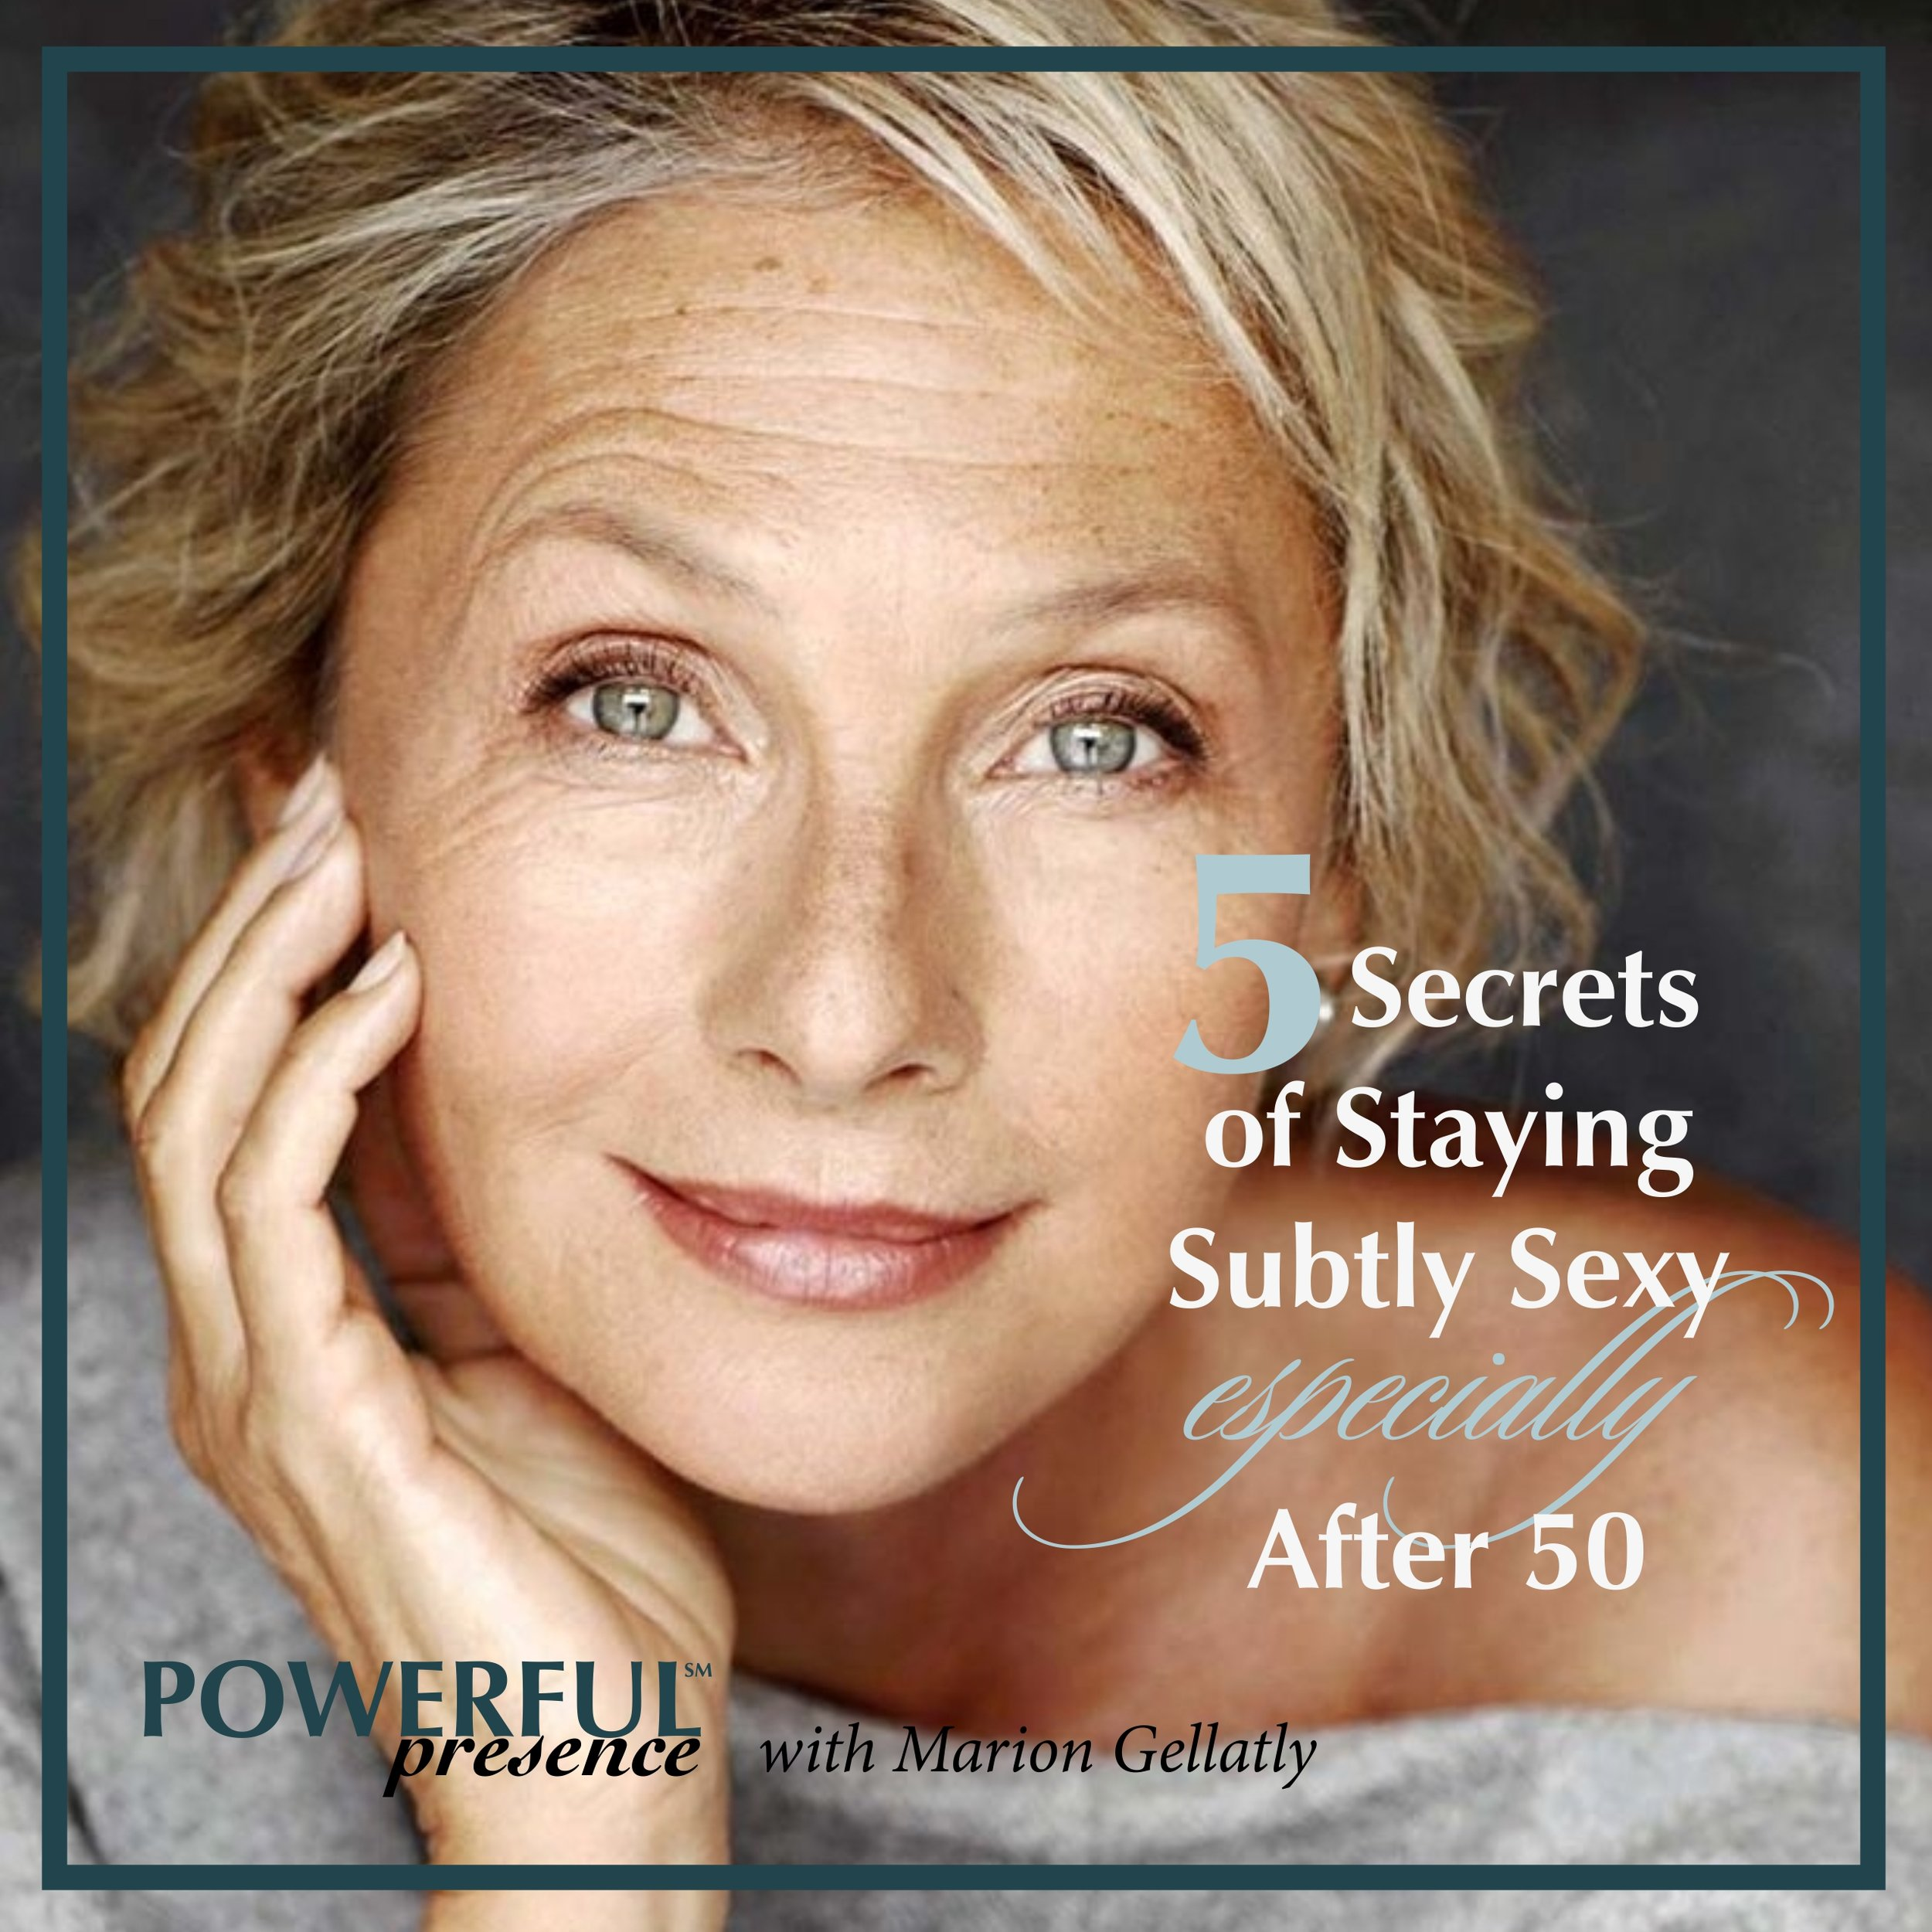 WANT TO STAY SUBTLY SEXY? - Download 5 Secrets of Staying Subtly Sexy…especially after 50, for Marion's tips on ways to dress sexy, alluring, and attractive as a mature woman.